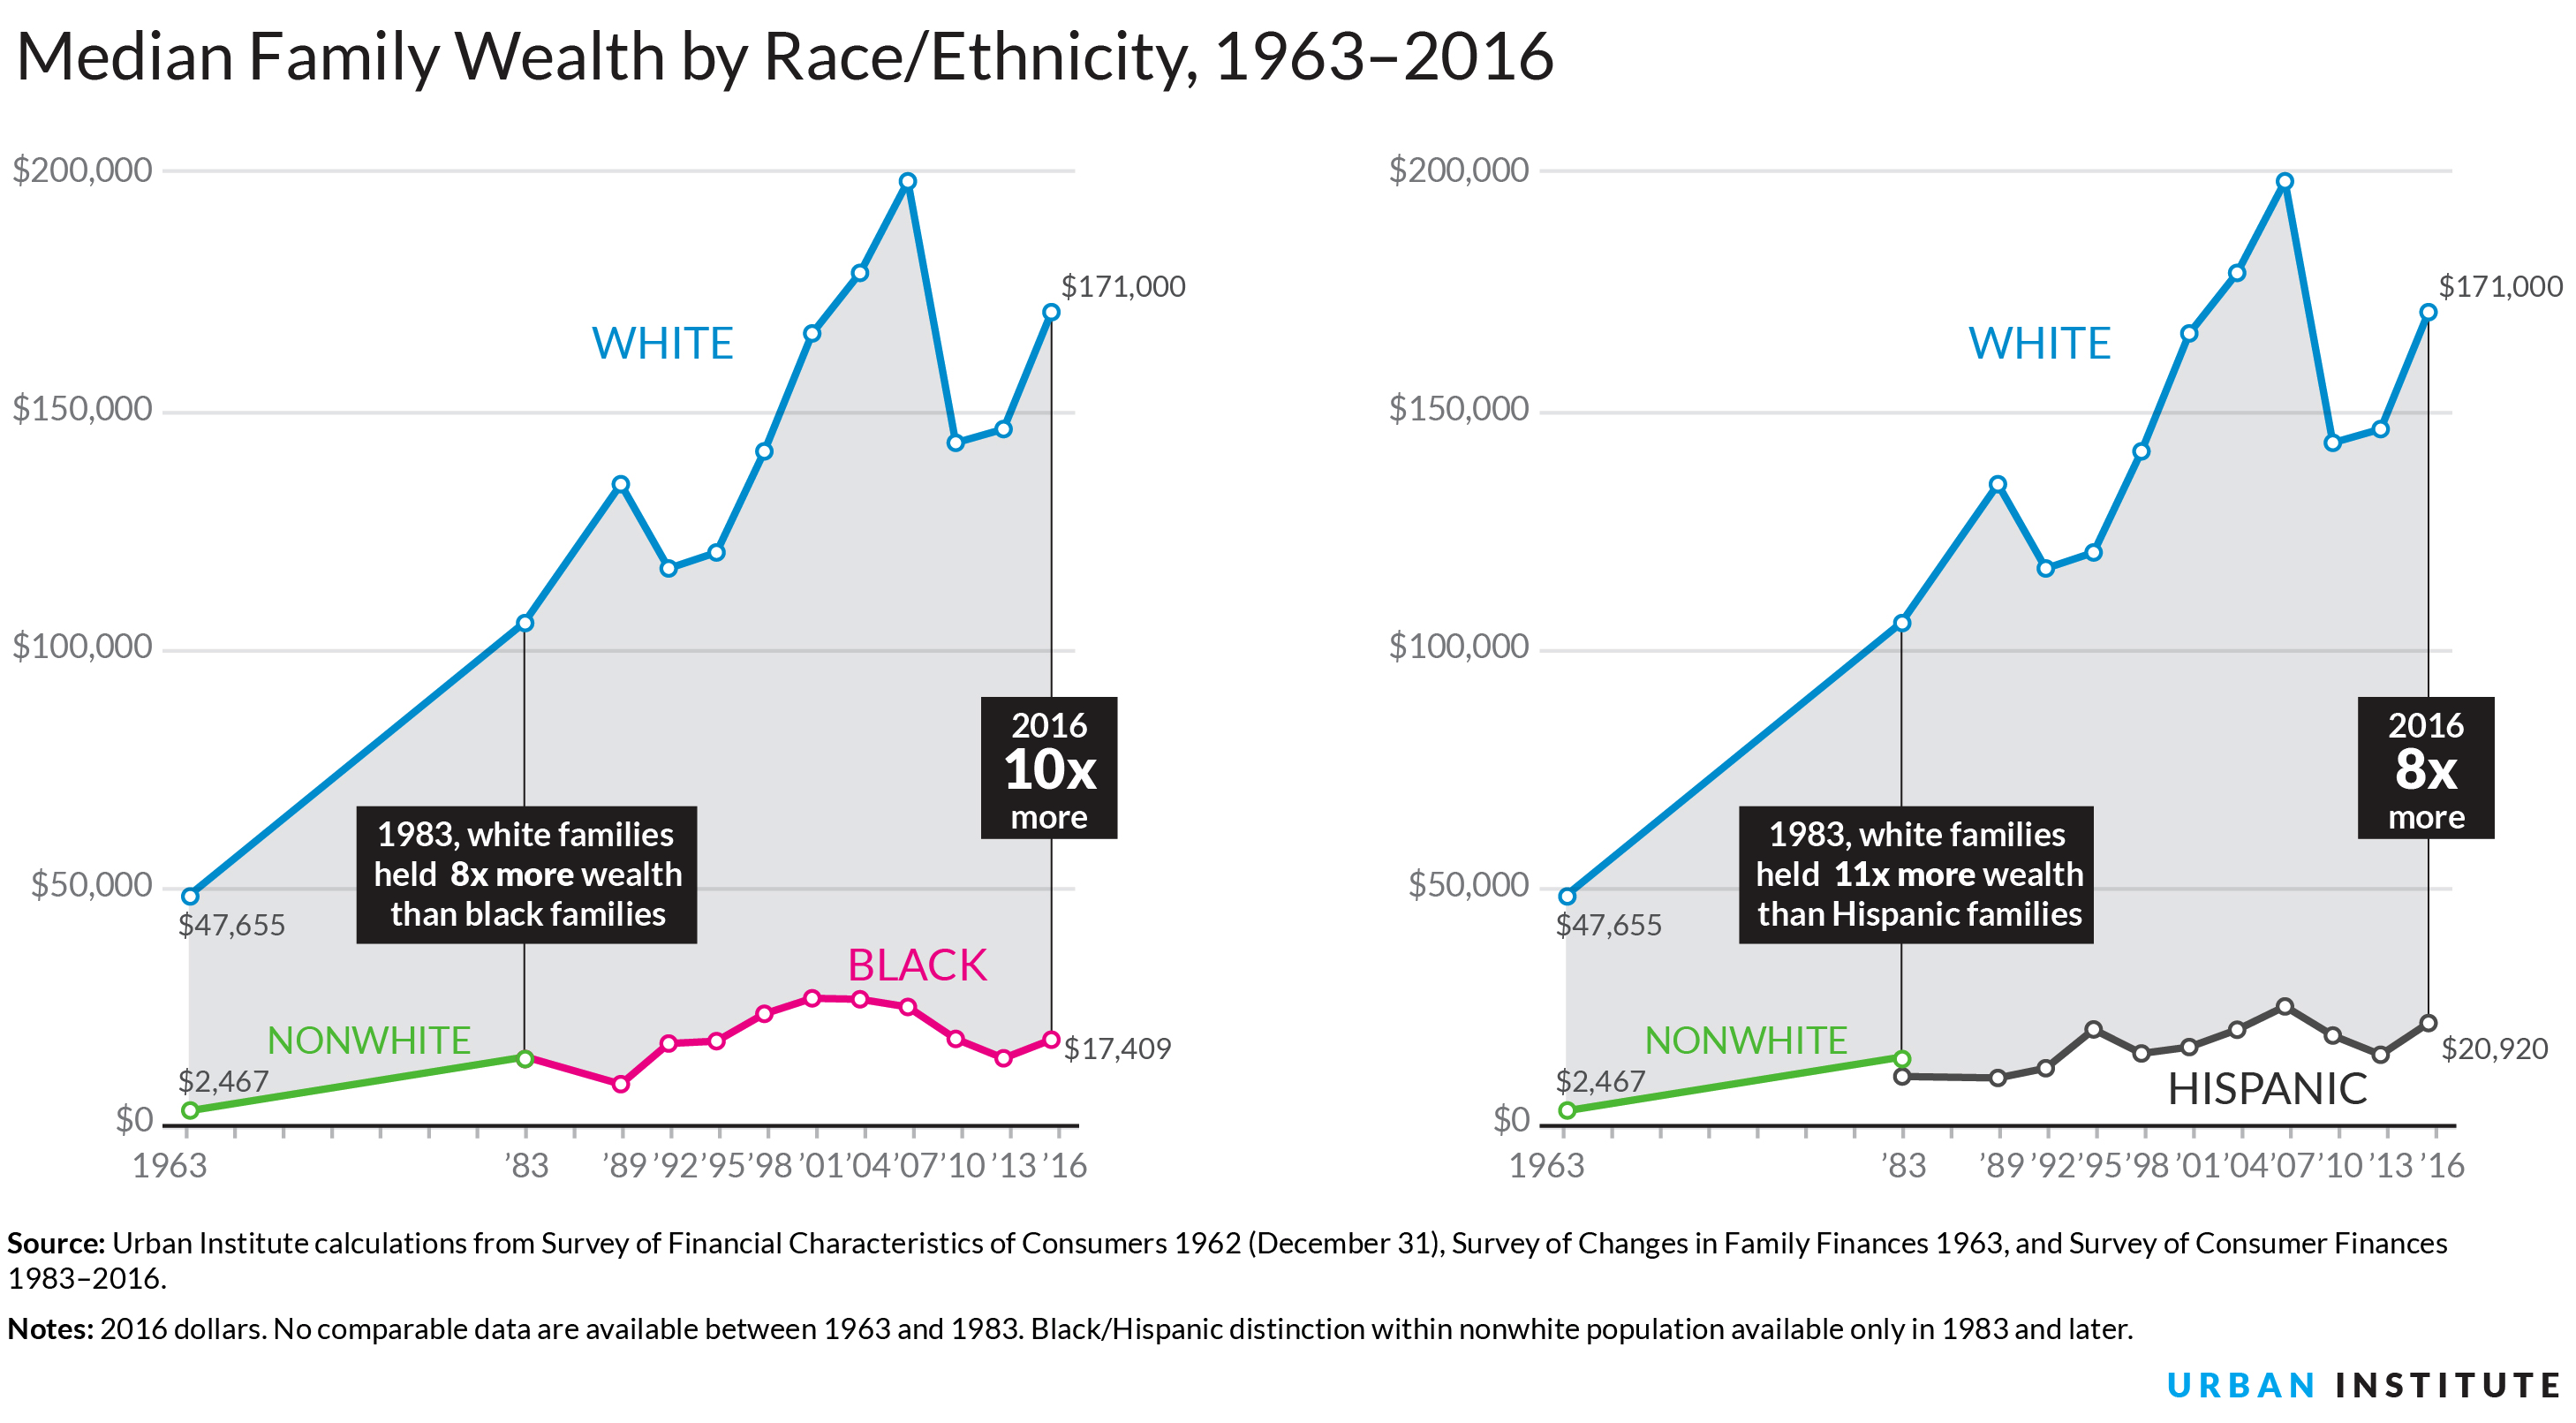 chart of wealth gap between black, white, and nonwhite people